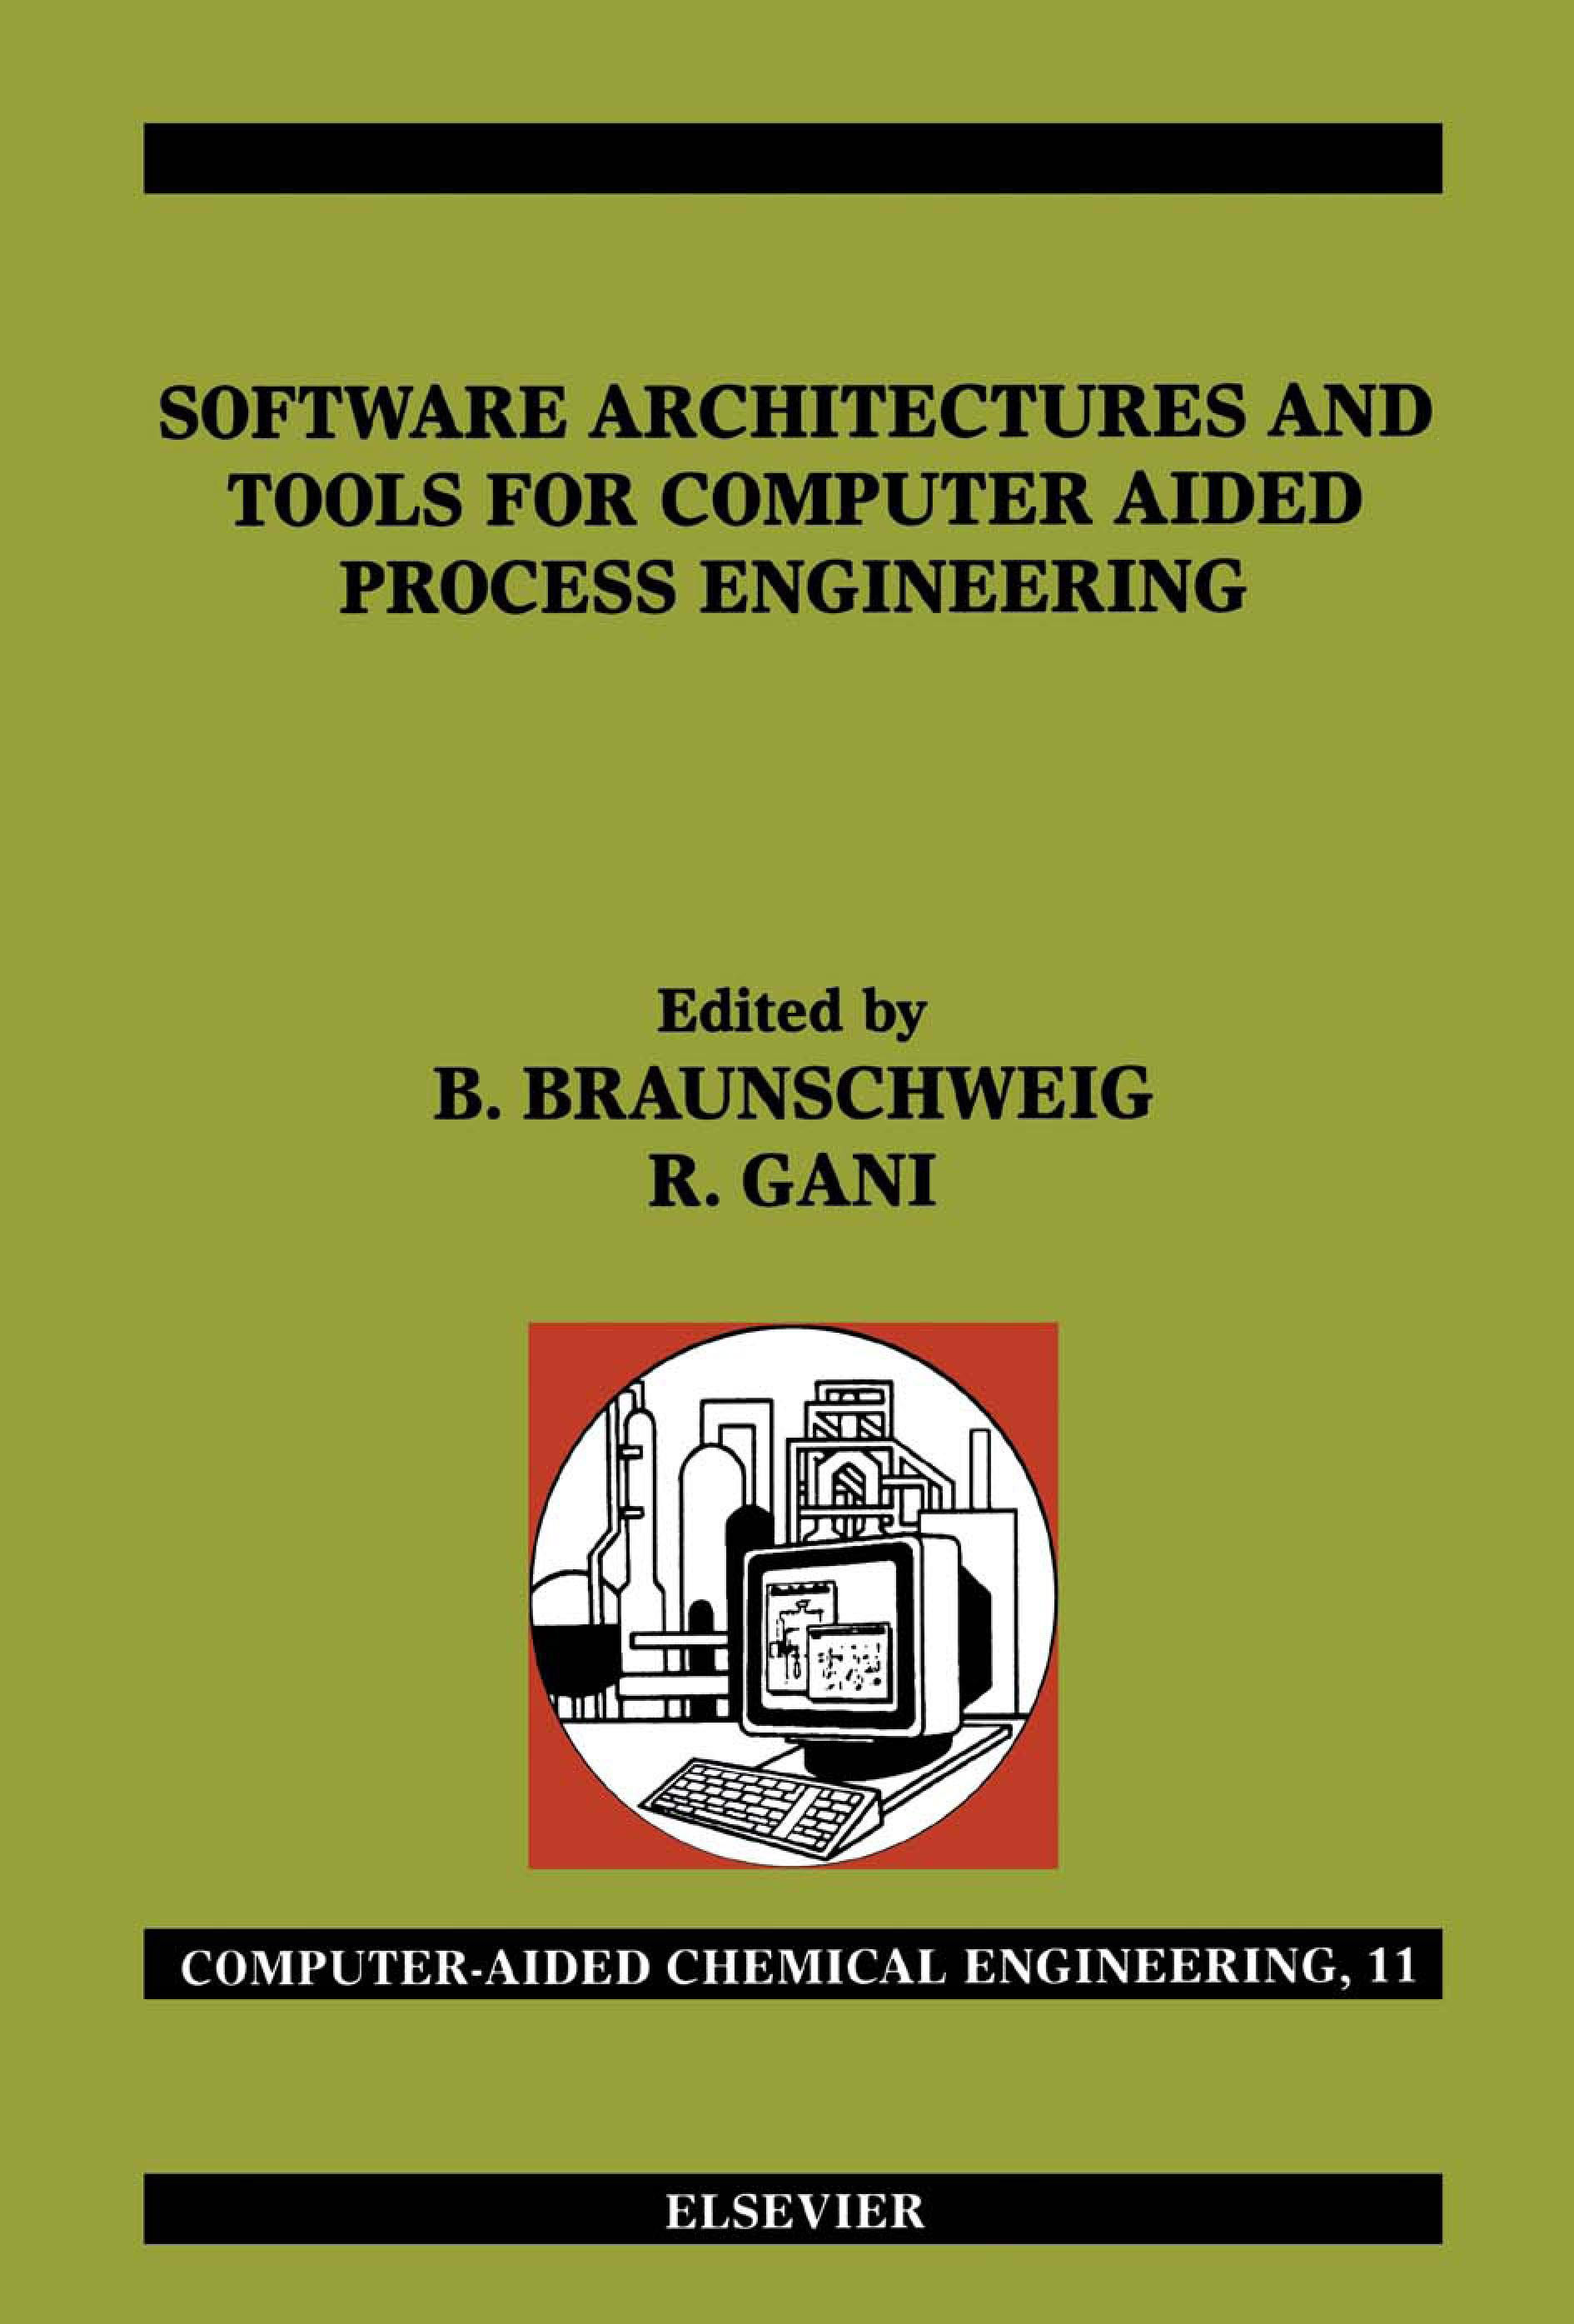 Software Architectures and Tools for Computer Aided Process Engineering: Computer-Aided Chemical Engineeirng, Vol. 11 EB9780080541365